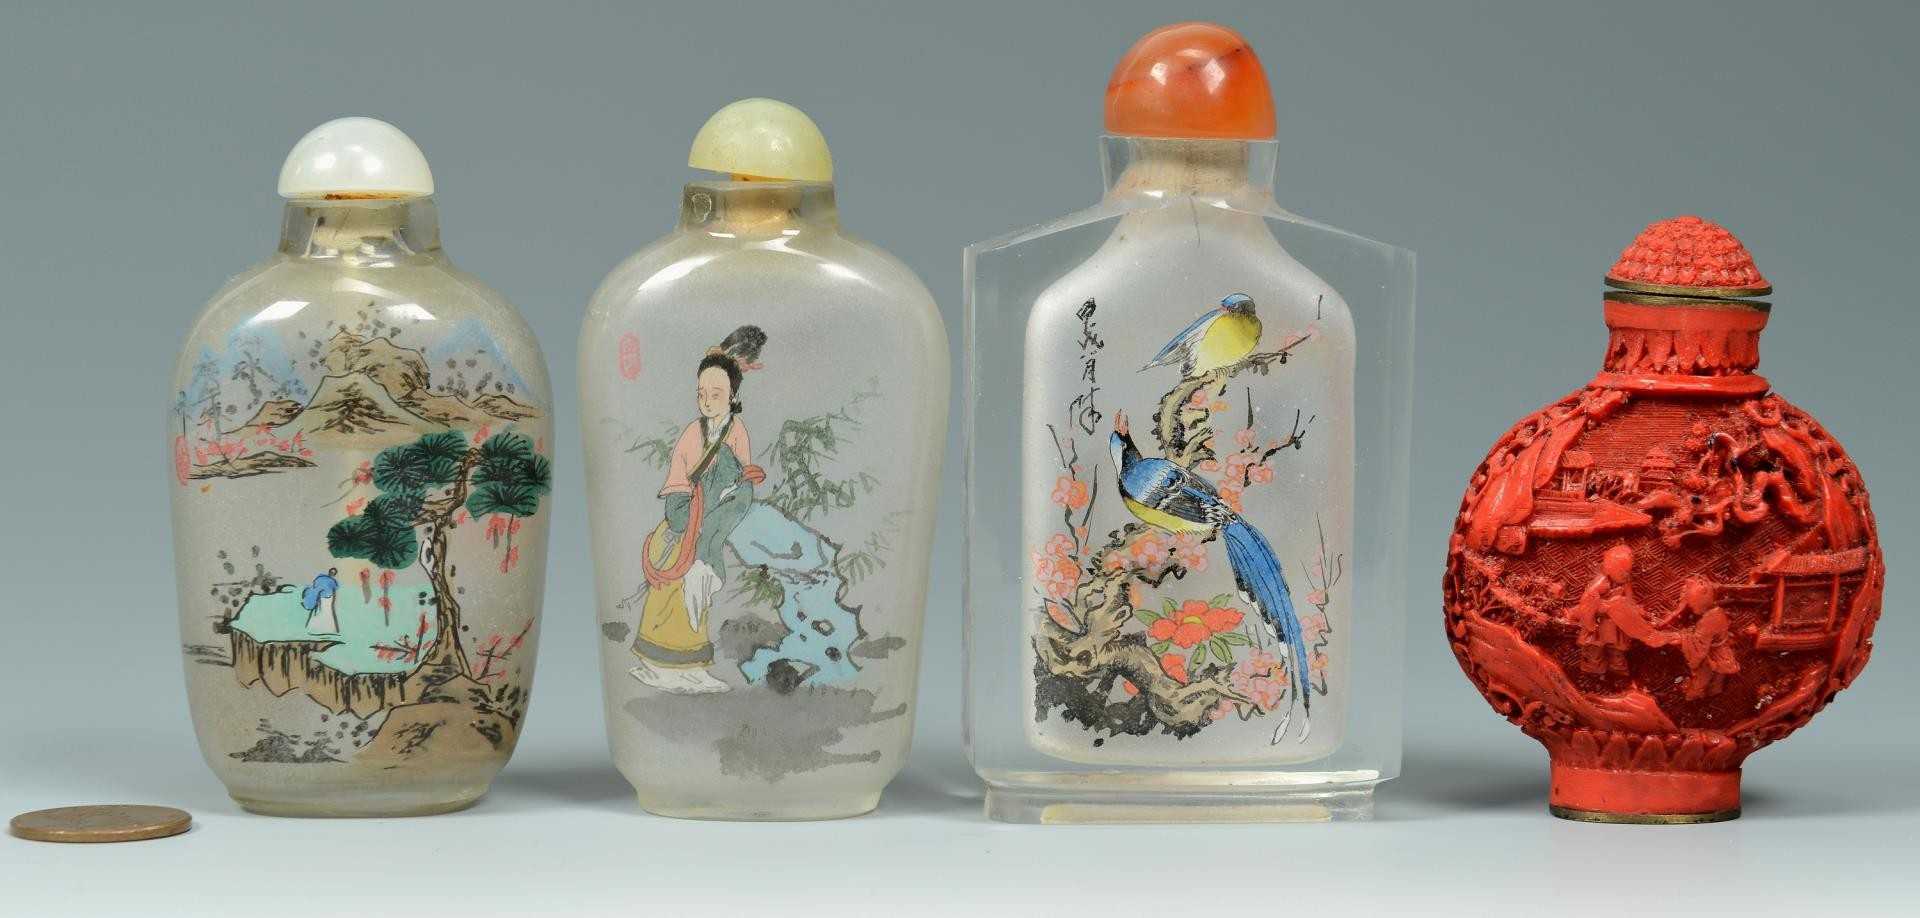 Lot 3383196: 4 Chinese Snuff Bottles